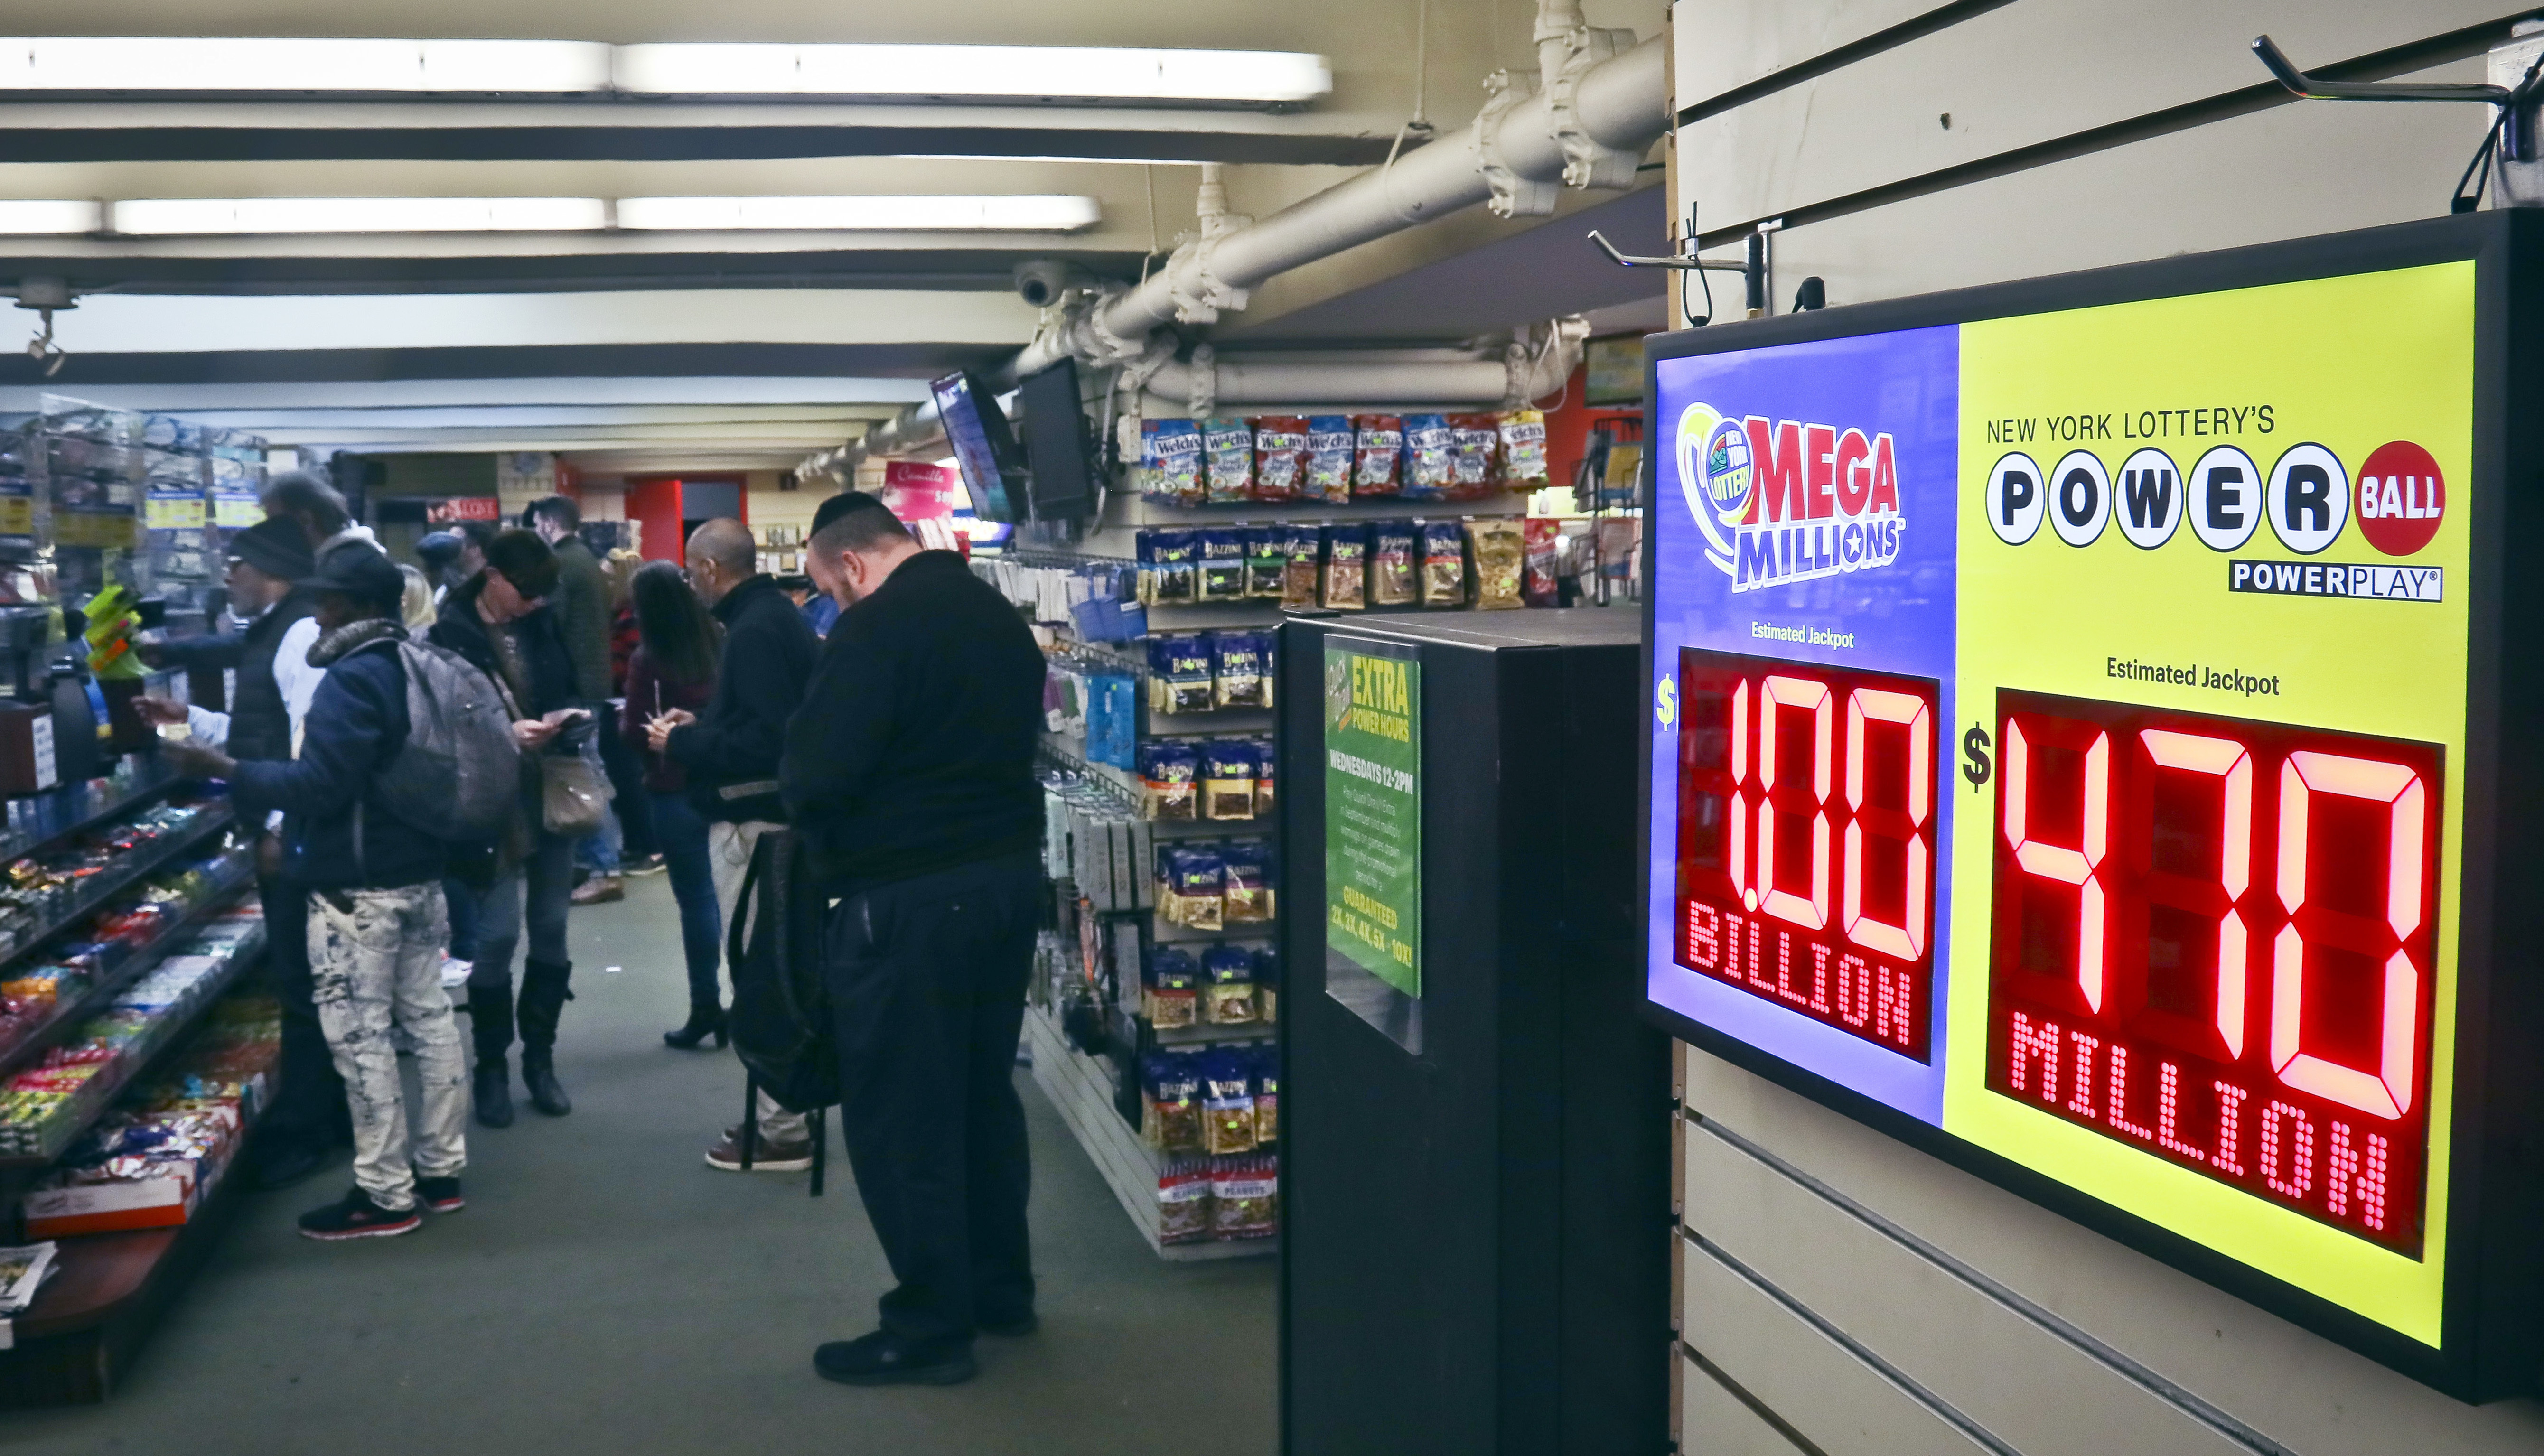 Lottery players buy Mega Millions lottery tickets, Friday Oct. 19, 2018, in New York. The estimated jackpot for Friday's drawing has soared to $1 billion. AP Photo